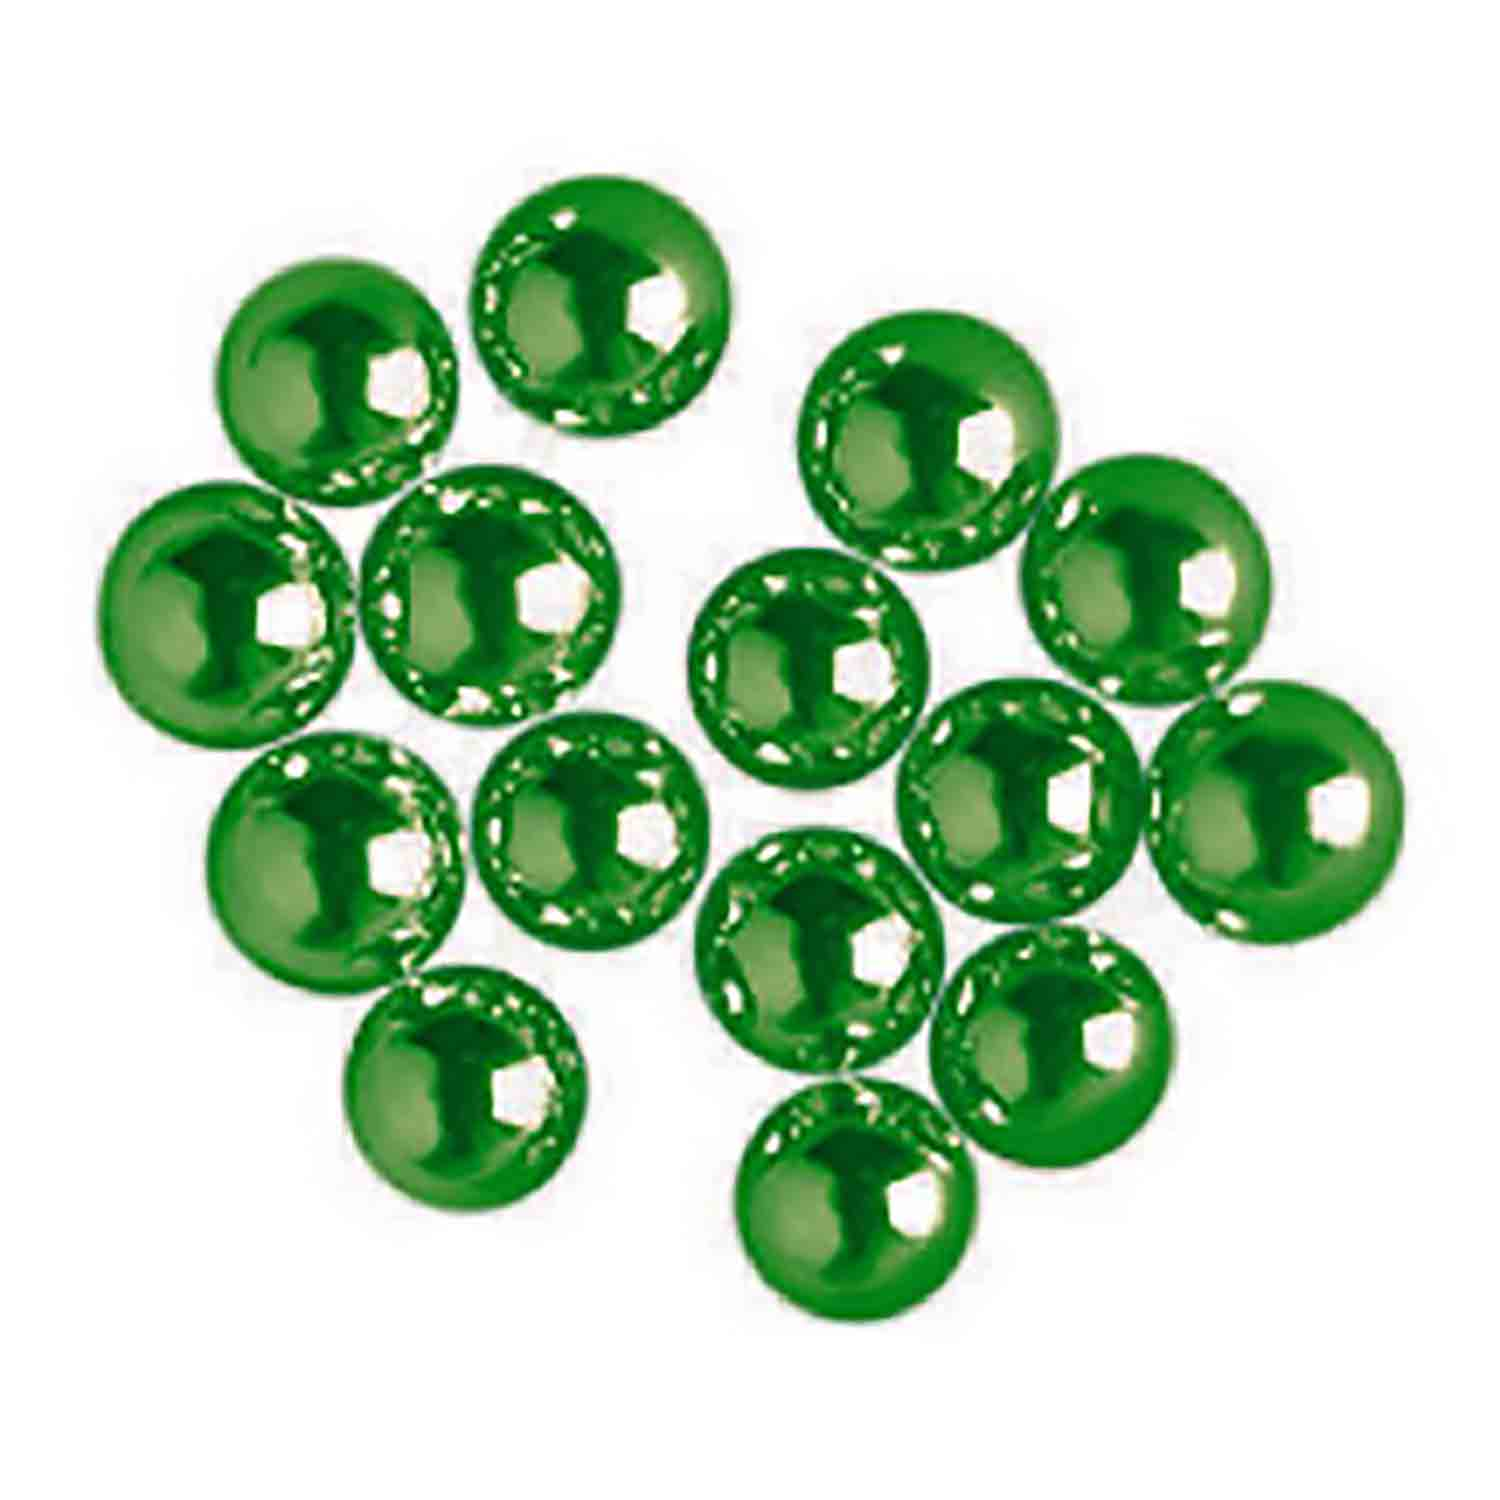 4mm Green Dragees